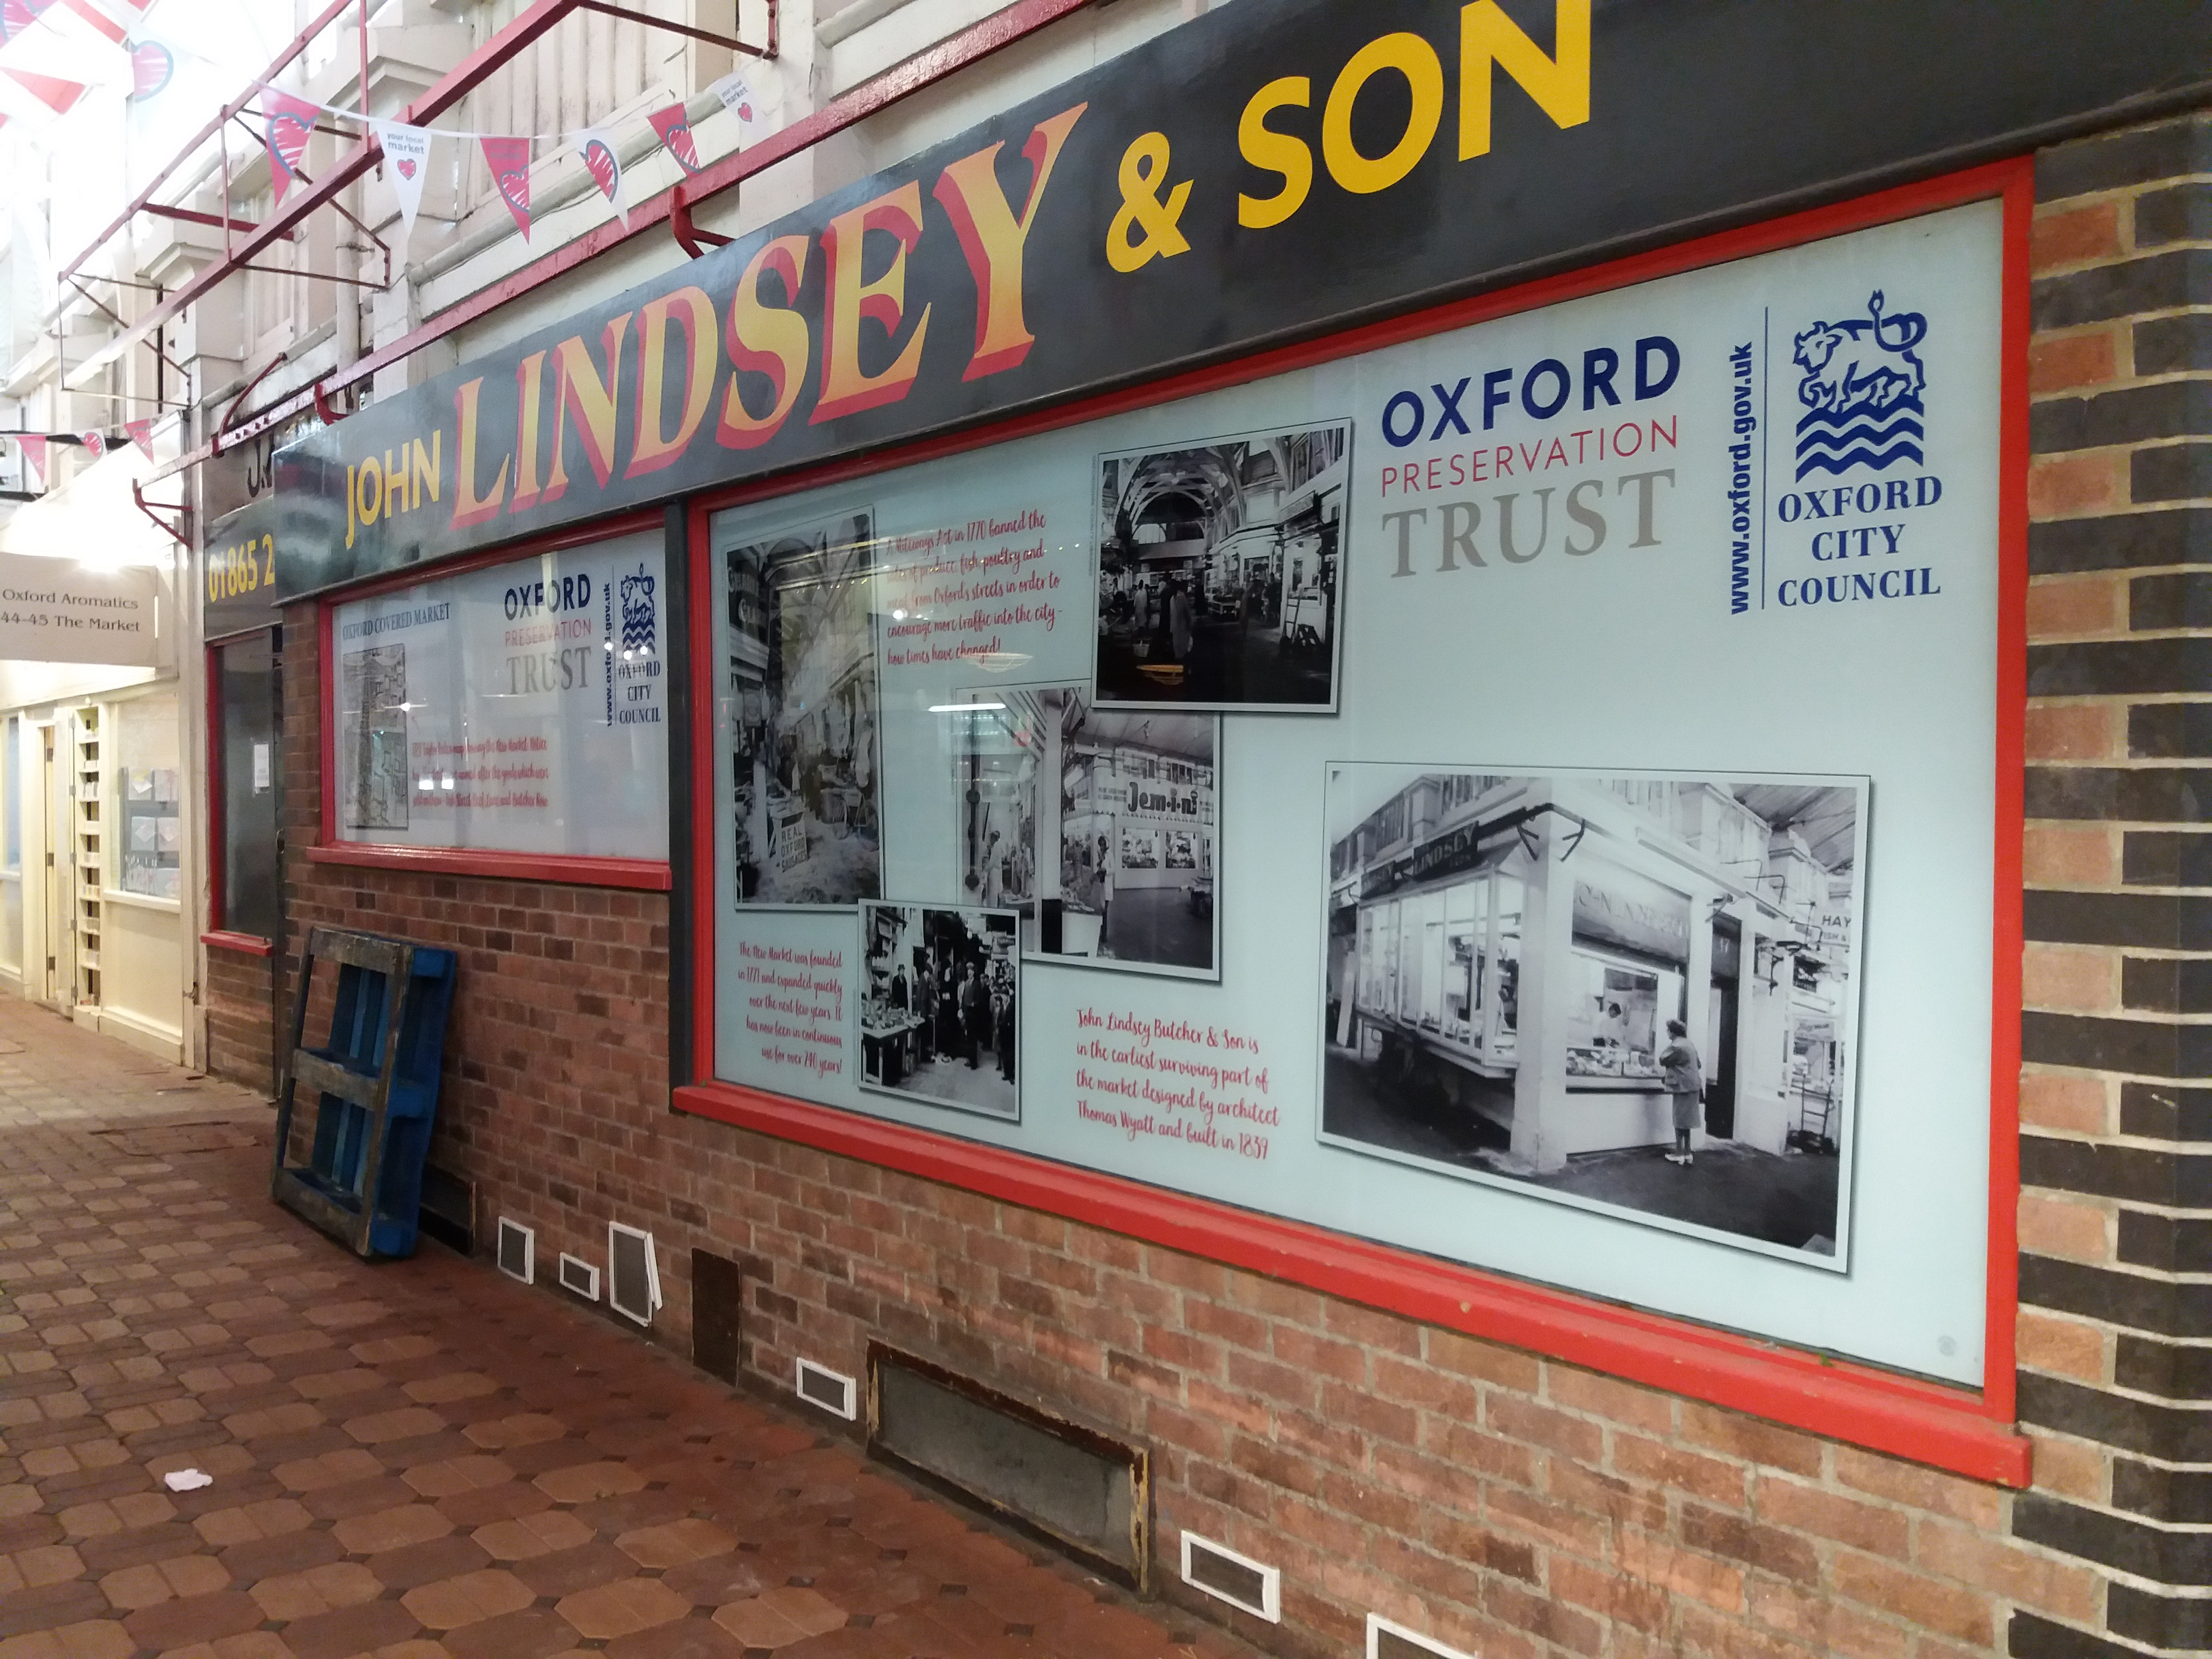 External view of the Lindseys Unit with vinyls